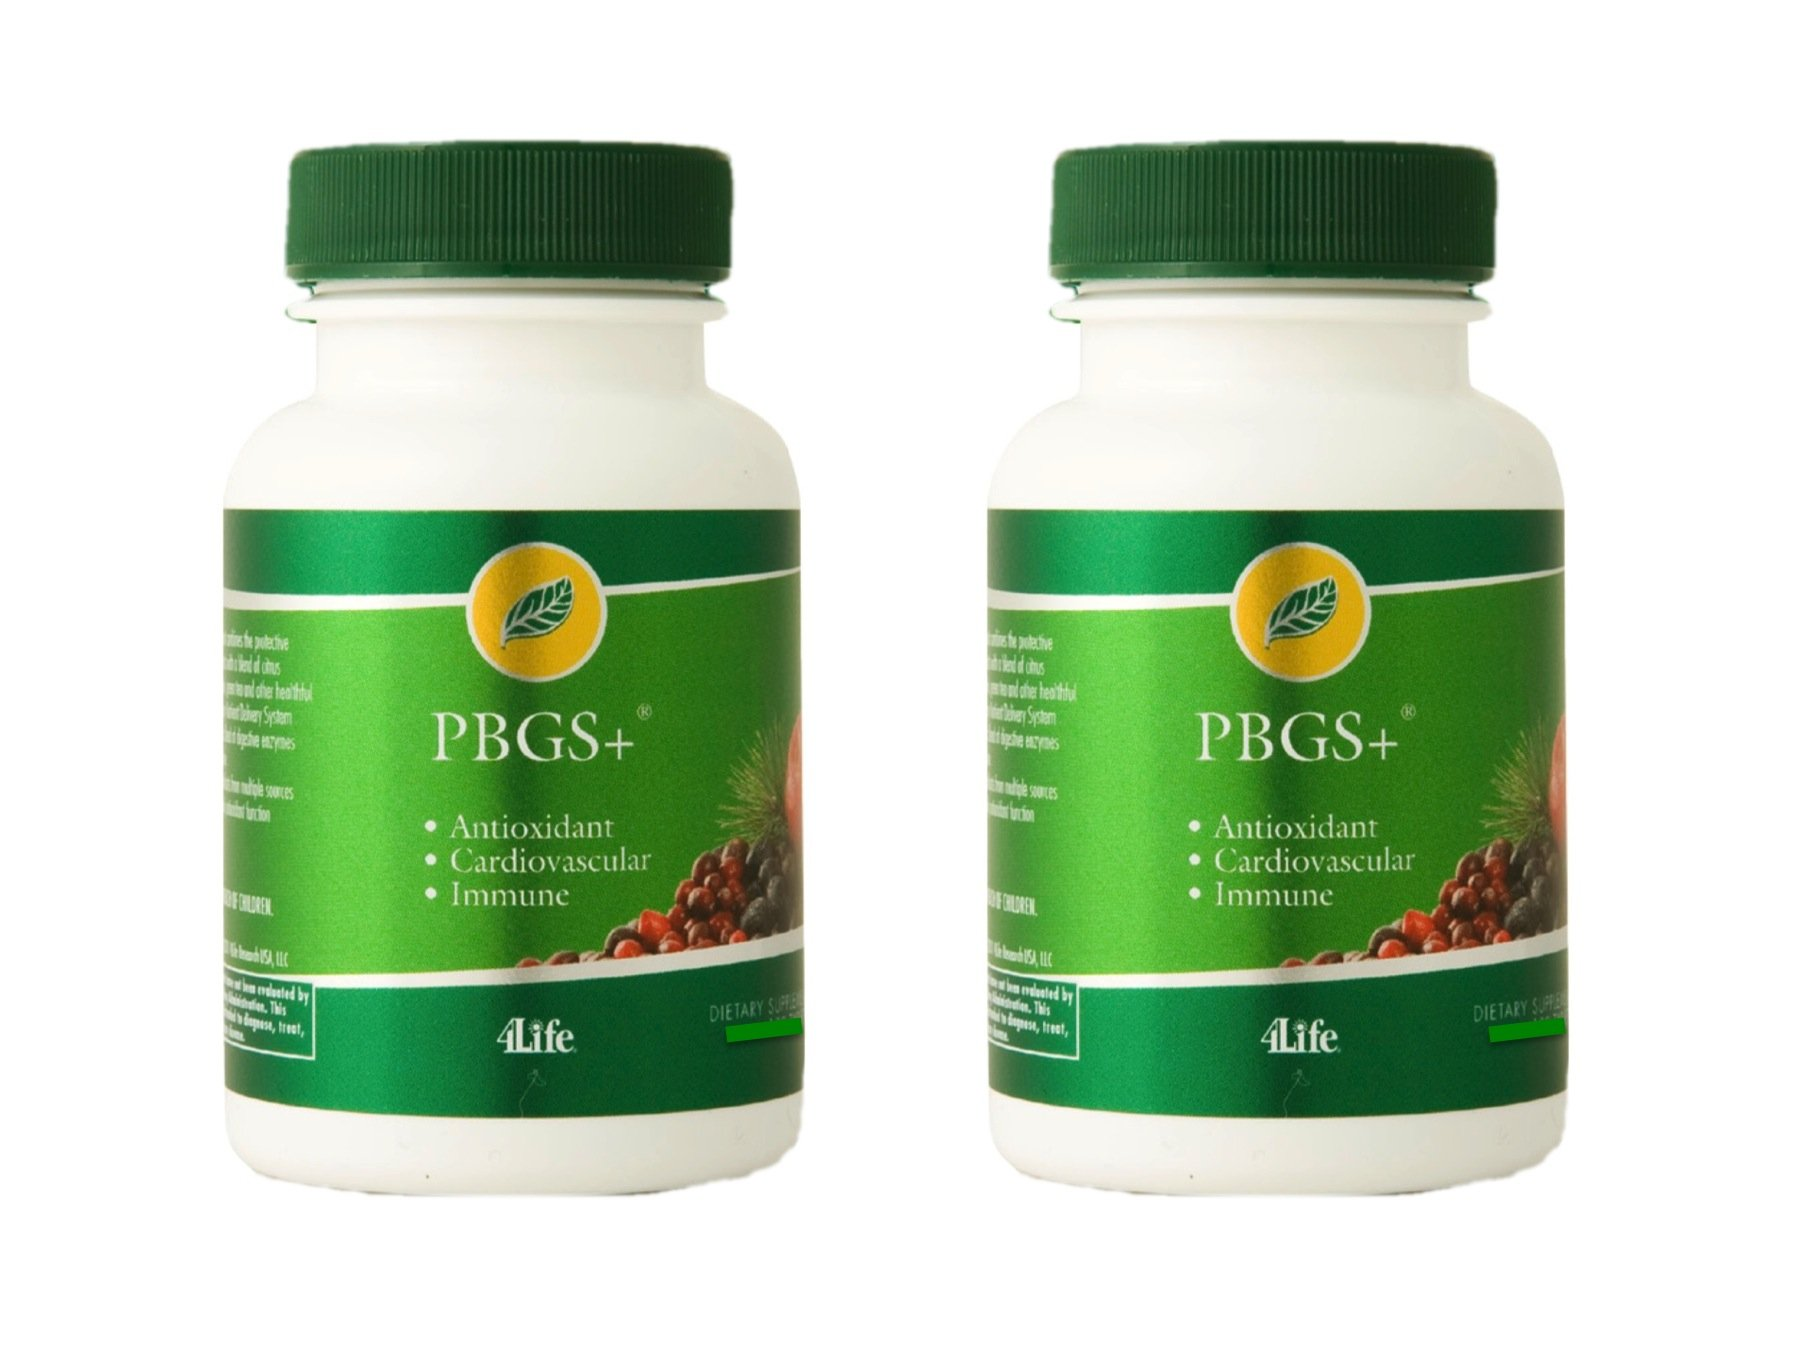 4life PBGS Antioxidant combination of pinebark and grapeseed extracts 60 capsules each (pack of 2)